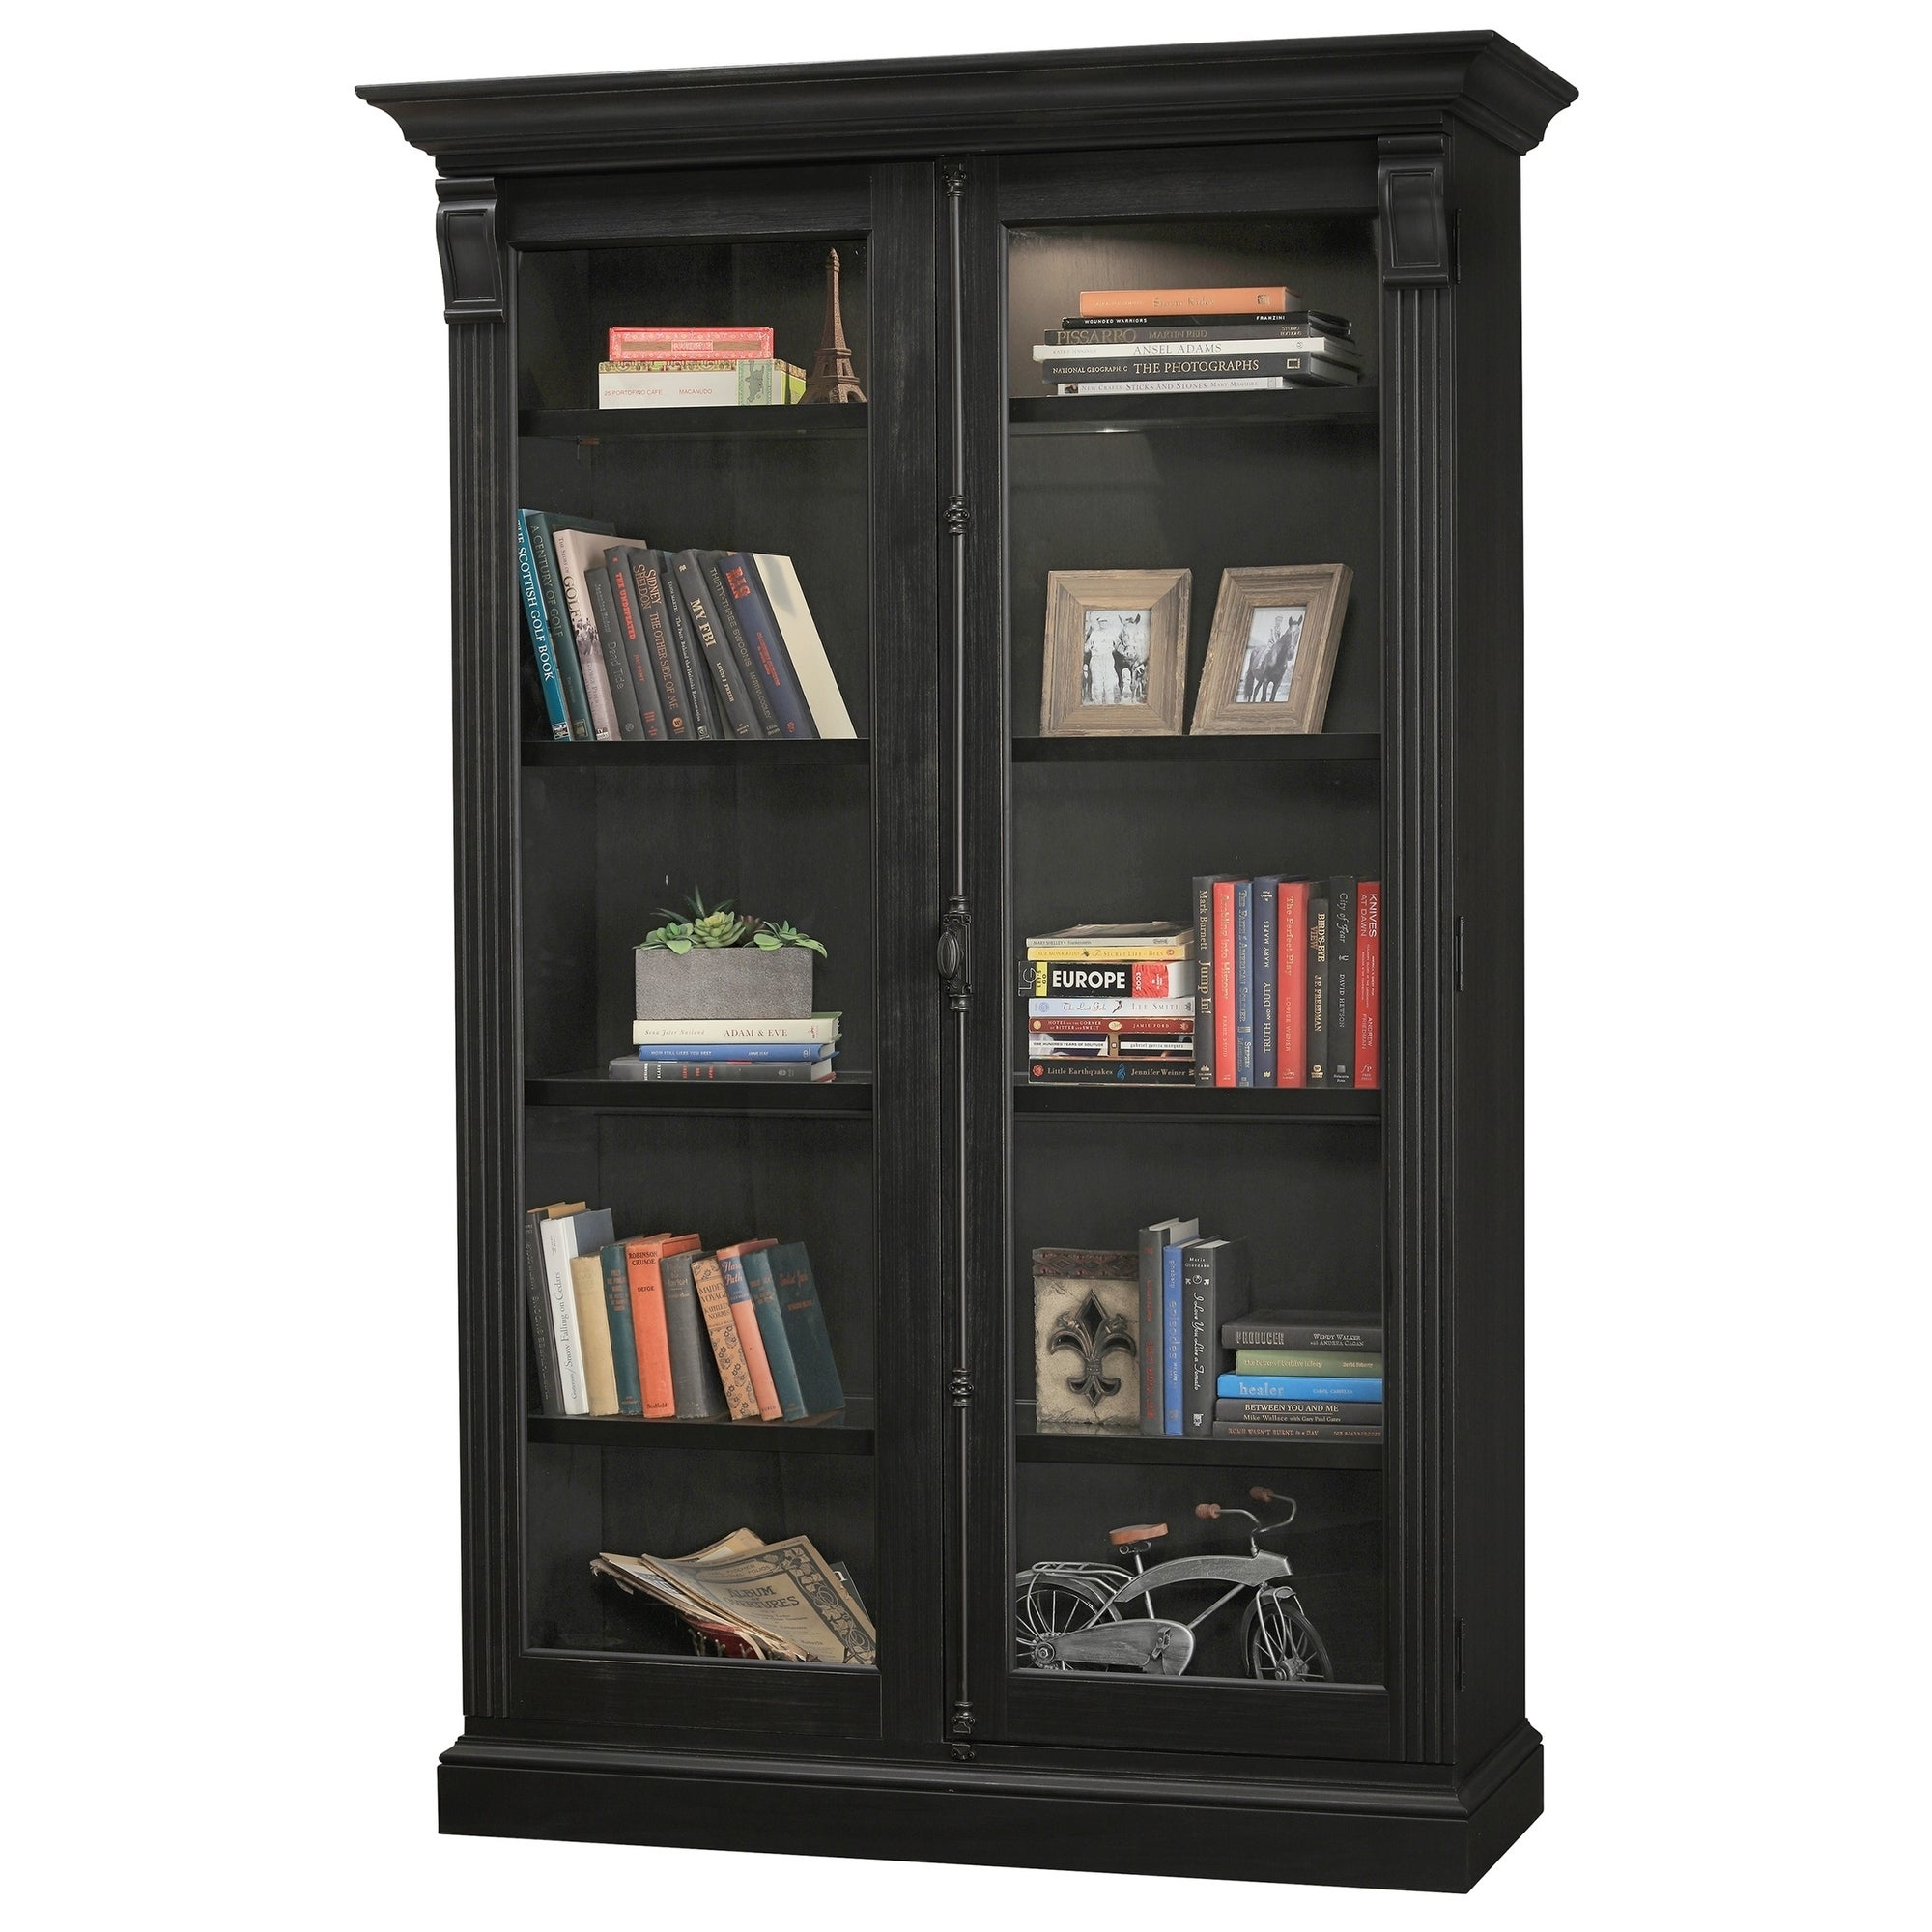 Howard Miller Chadsford IV Aged Black Wood Tall 5-shelf Living Room Curio  Cabinet